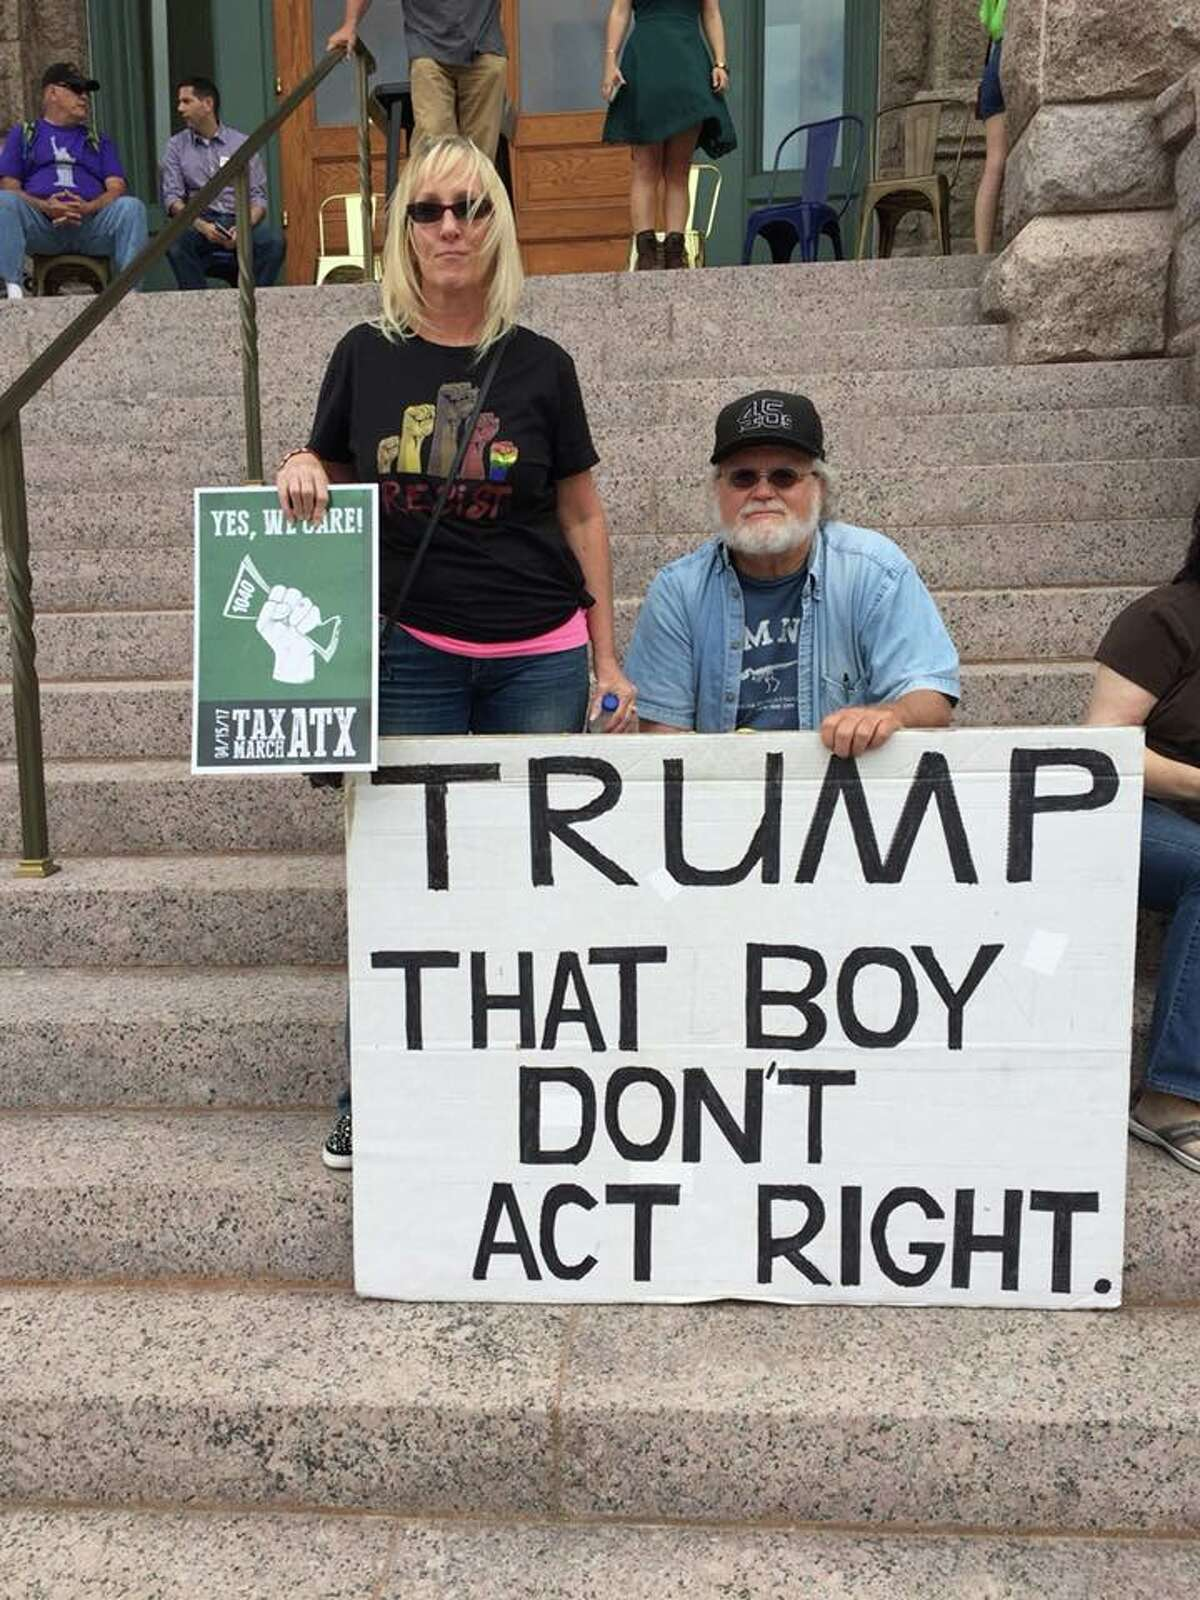 The last thing Gale McCray, 75, of Fort Worth, expected was for his simple anti-Trump sign to become one of the most recognizable images criticizing the commander-in-chief this year.